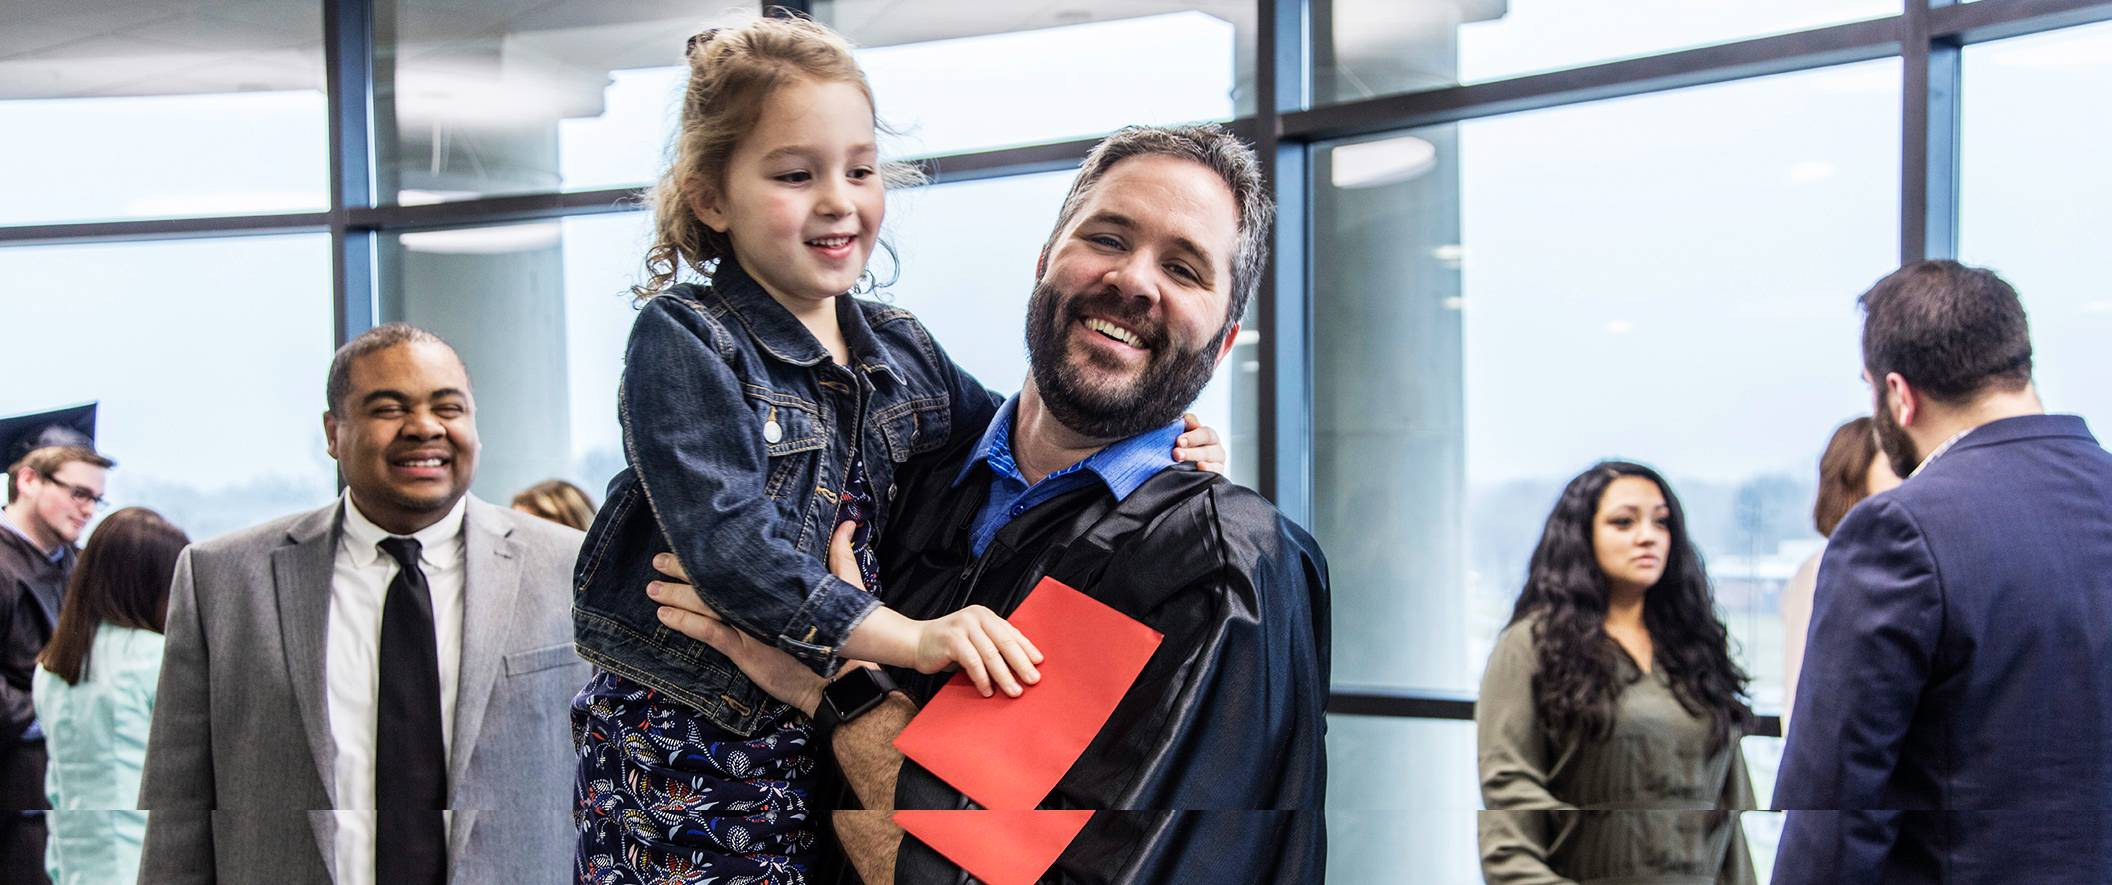 Graduate dad holds young daughter on graduation day